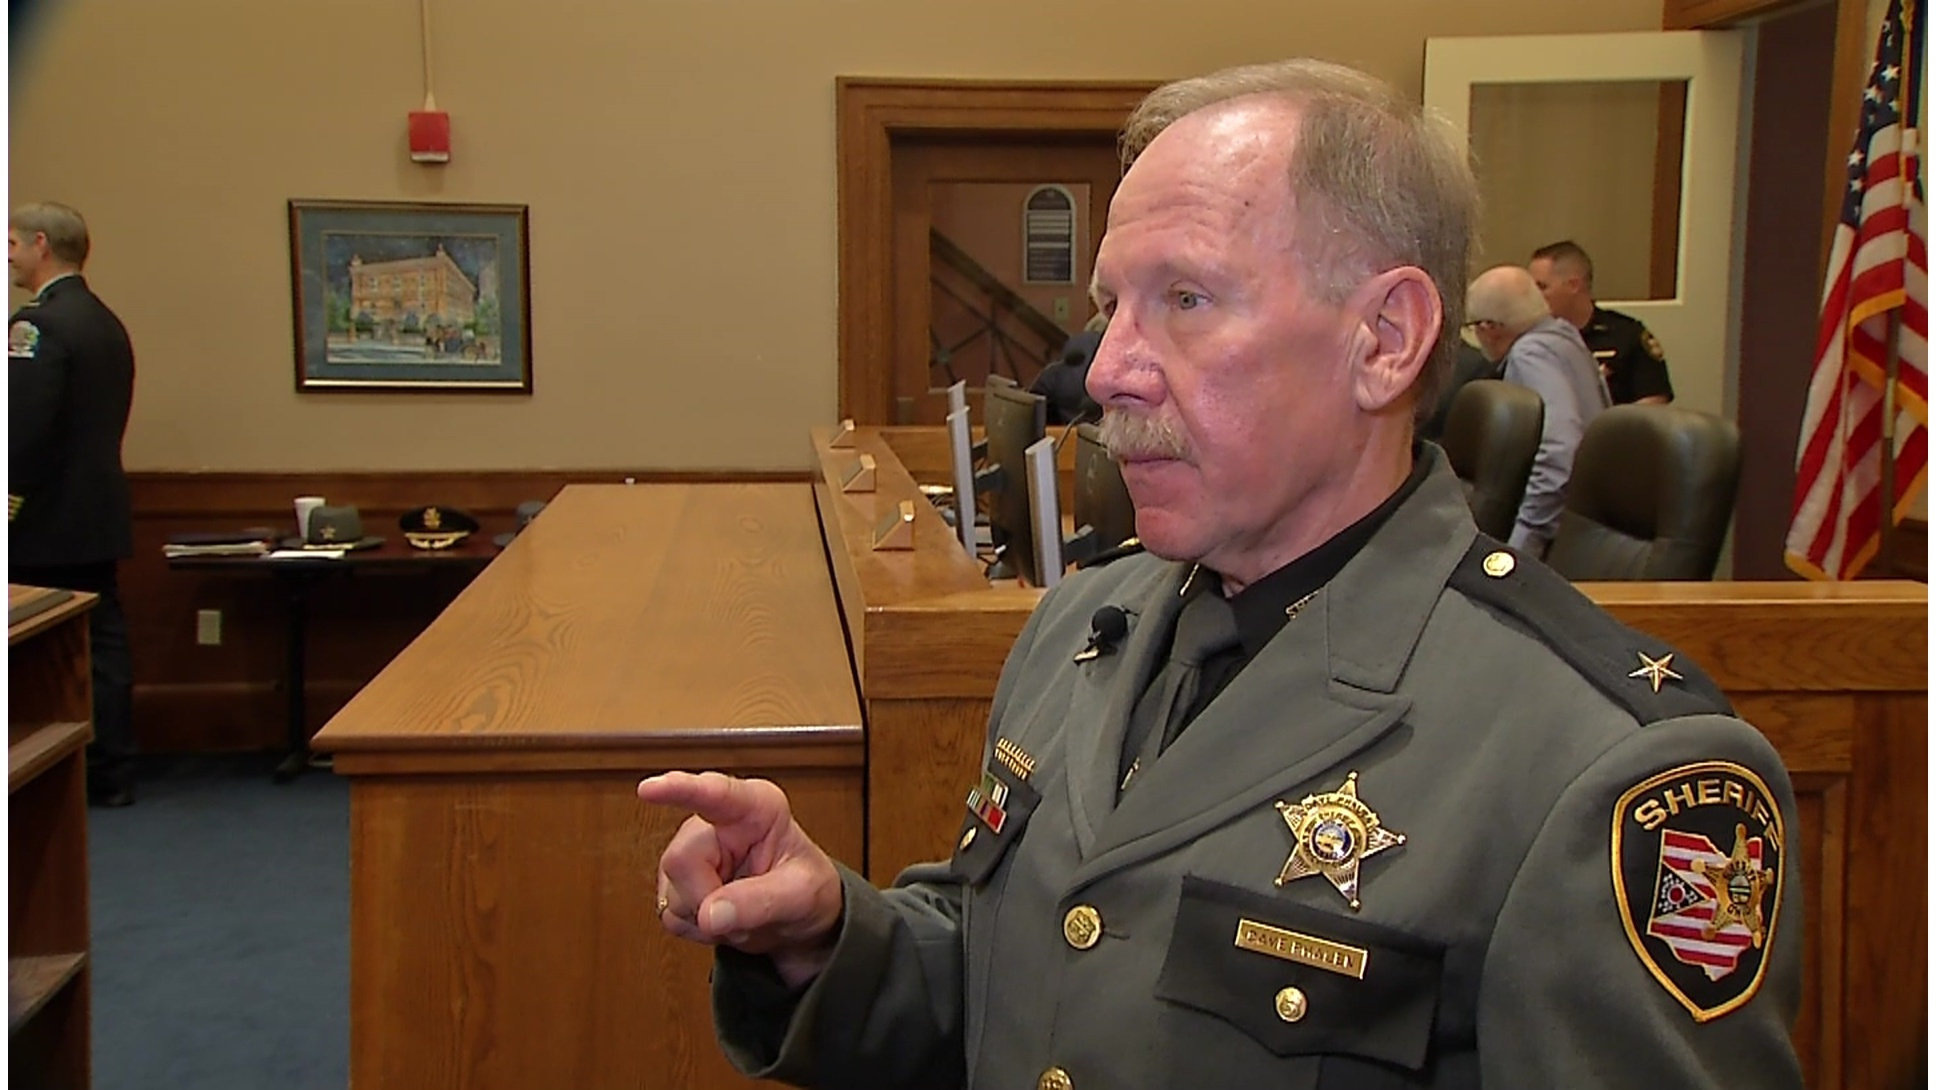 Sheriff: Issue 1 would make Ohio magnet for drug dealers